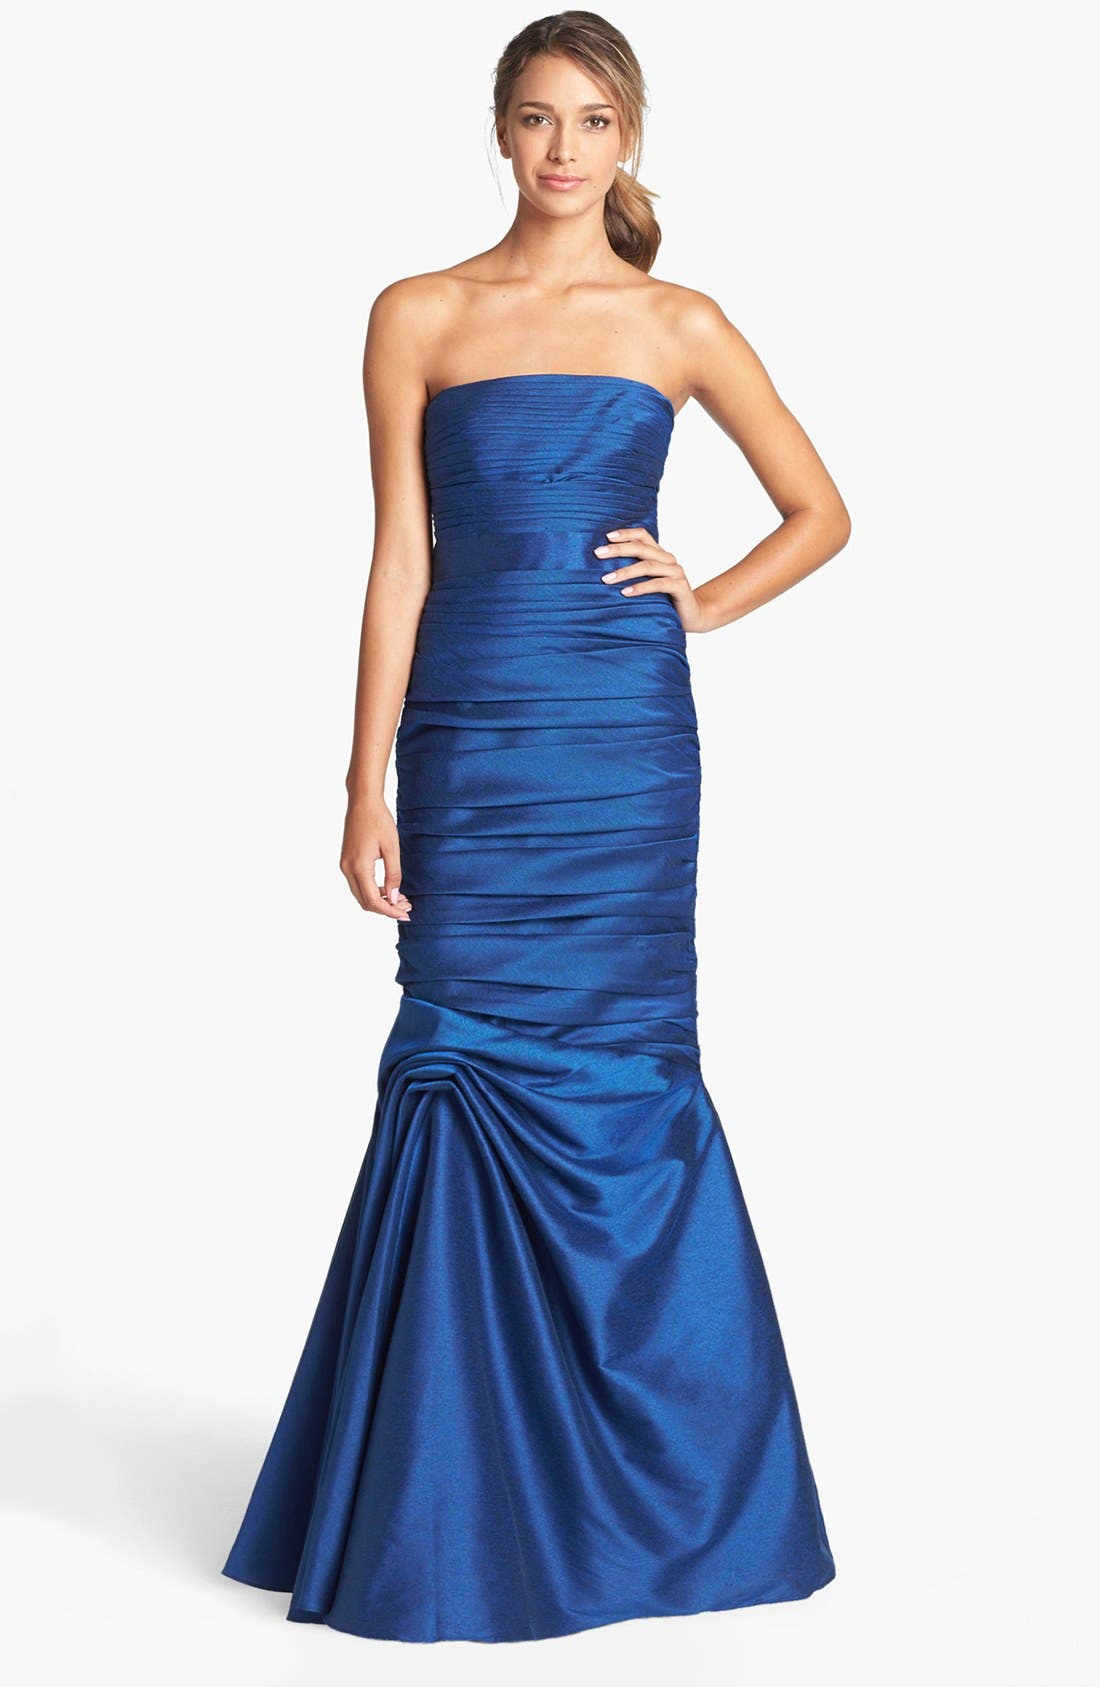 Alternate Image 1 Selected - ML Monique Lhuillier Strapless Ruched Faille Mermaid Gown (Nordstrom Exclusive)